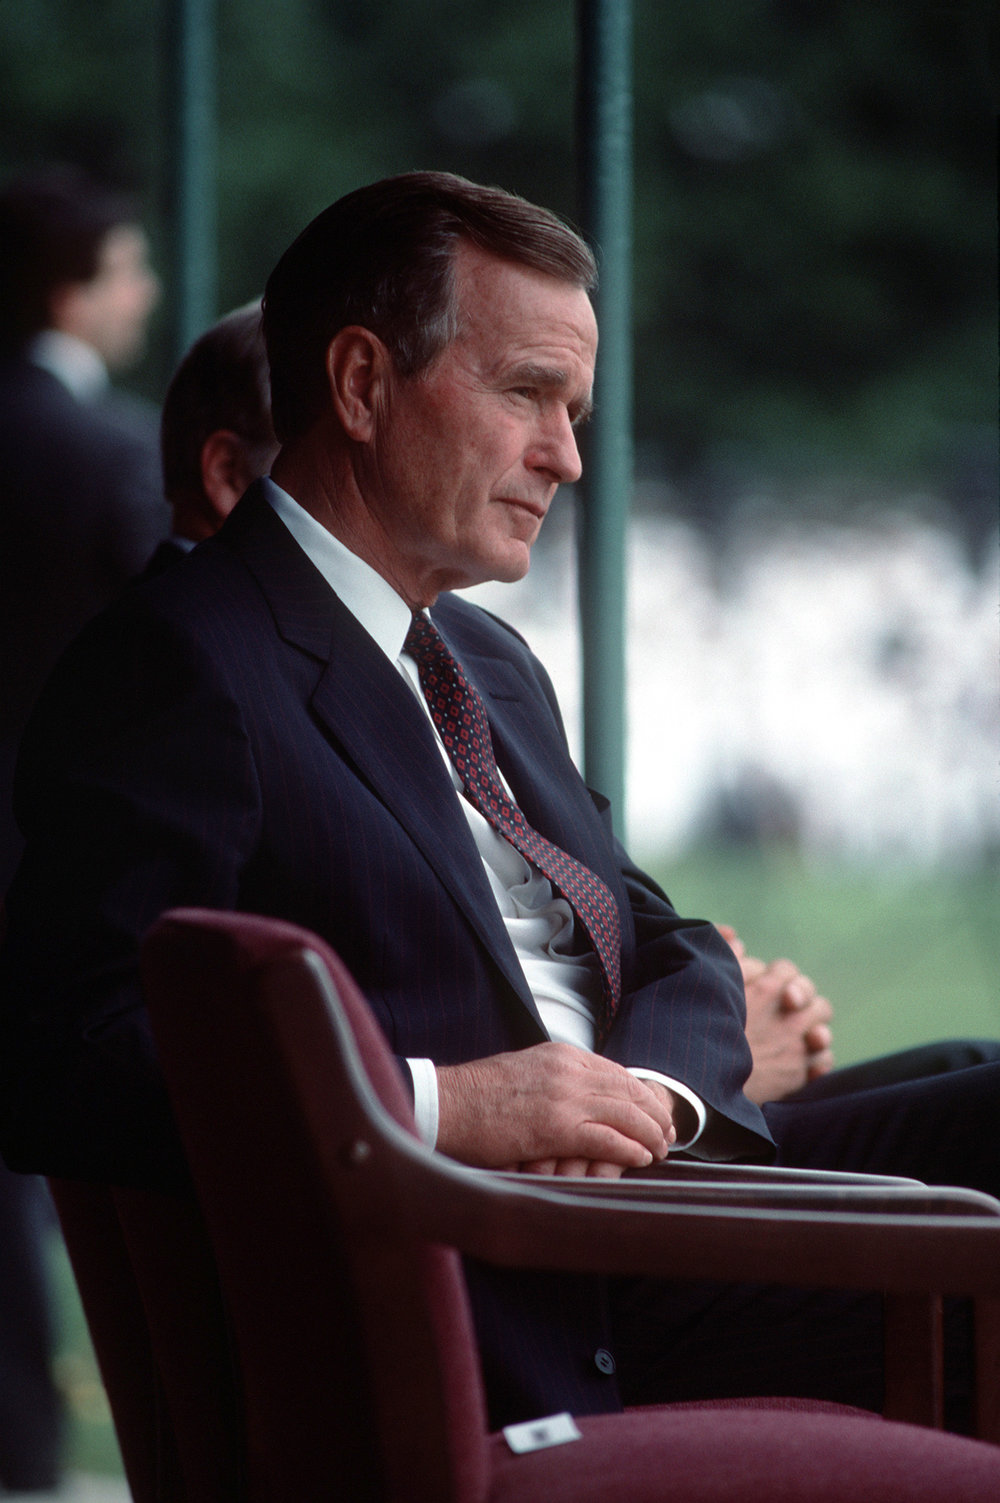 President George H.W. Bush listens to a speech during the retirement ceremony for Admiral William J. Crowe Jr., chairman, Joint Chiefs of Staff. The ceremony is being held at the US Naval Academy in Annapolis.